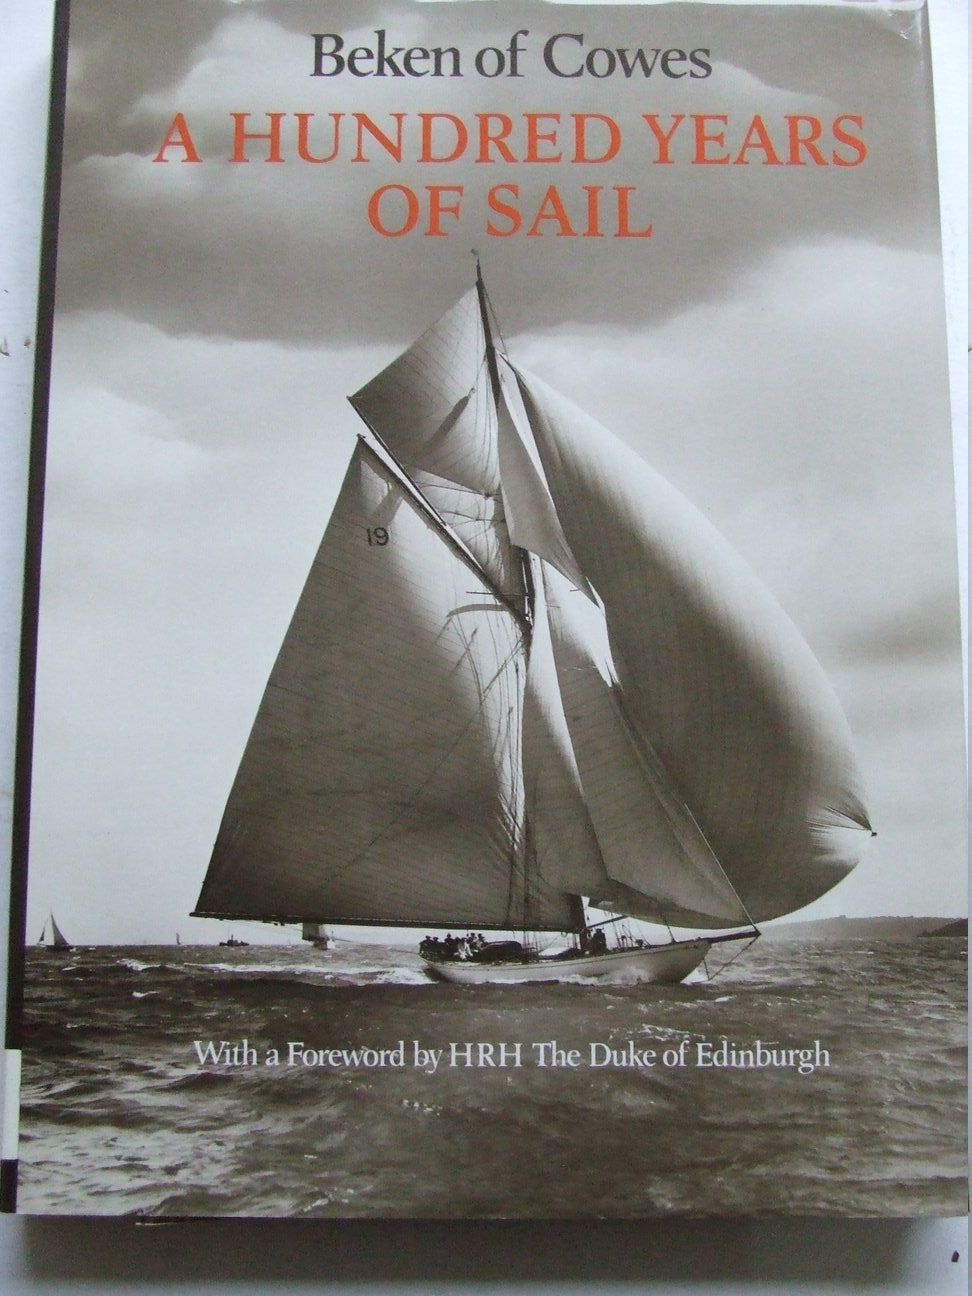 Hundred Years of Sail  -  Beken of Cowes